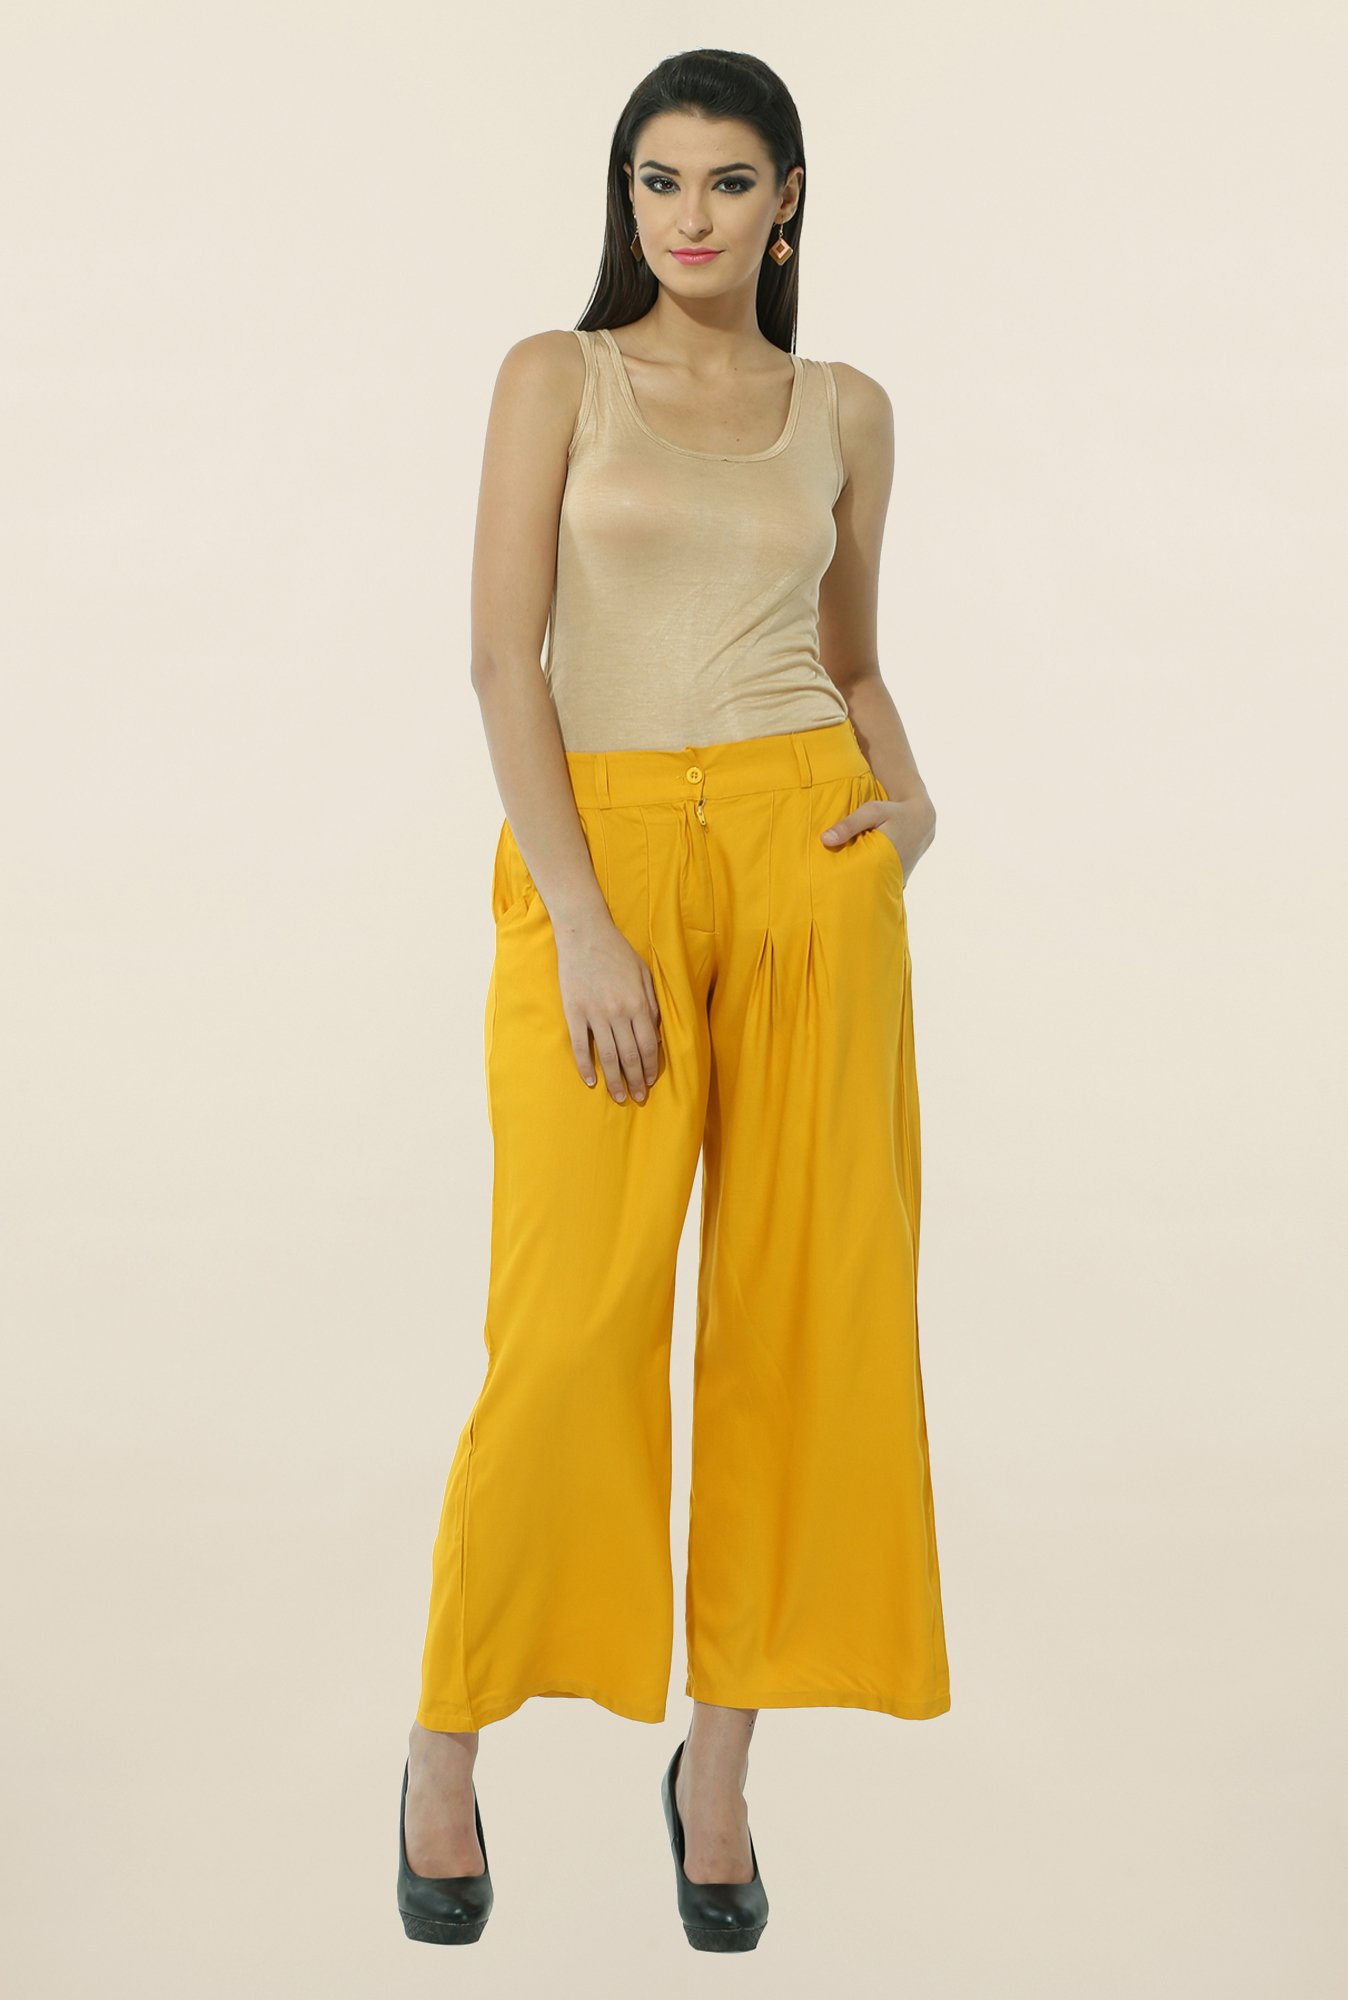 W Yellow Pleated Palazzos